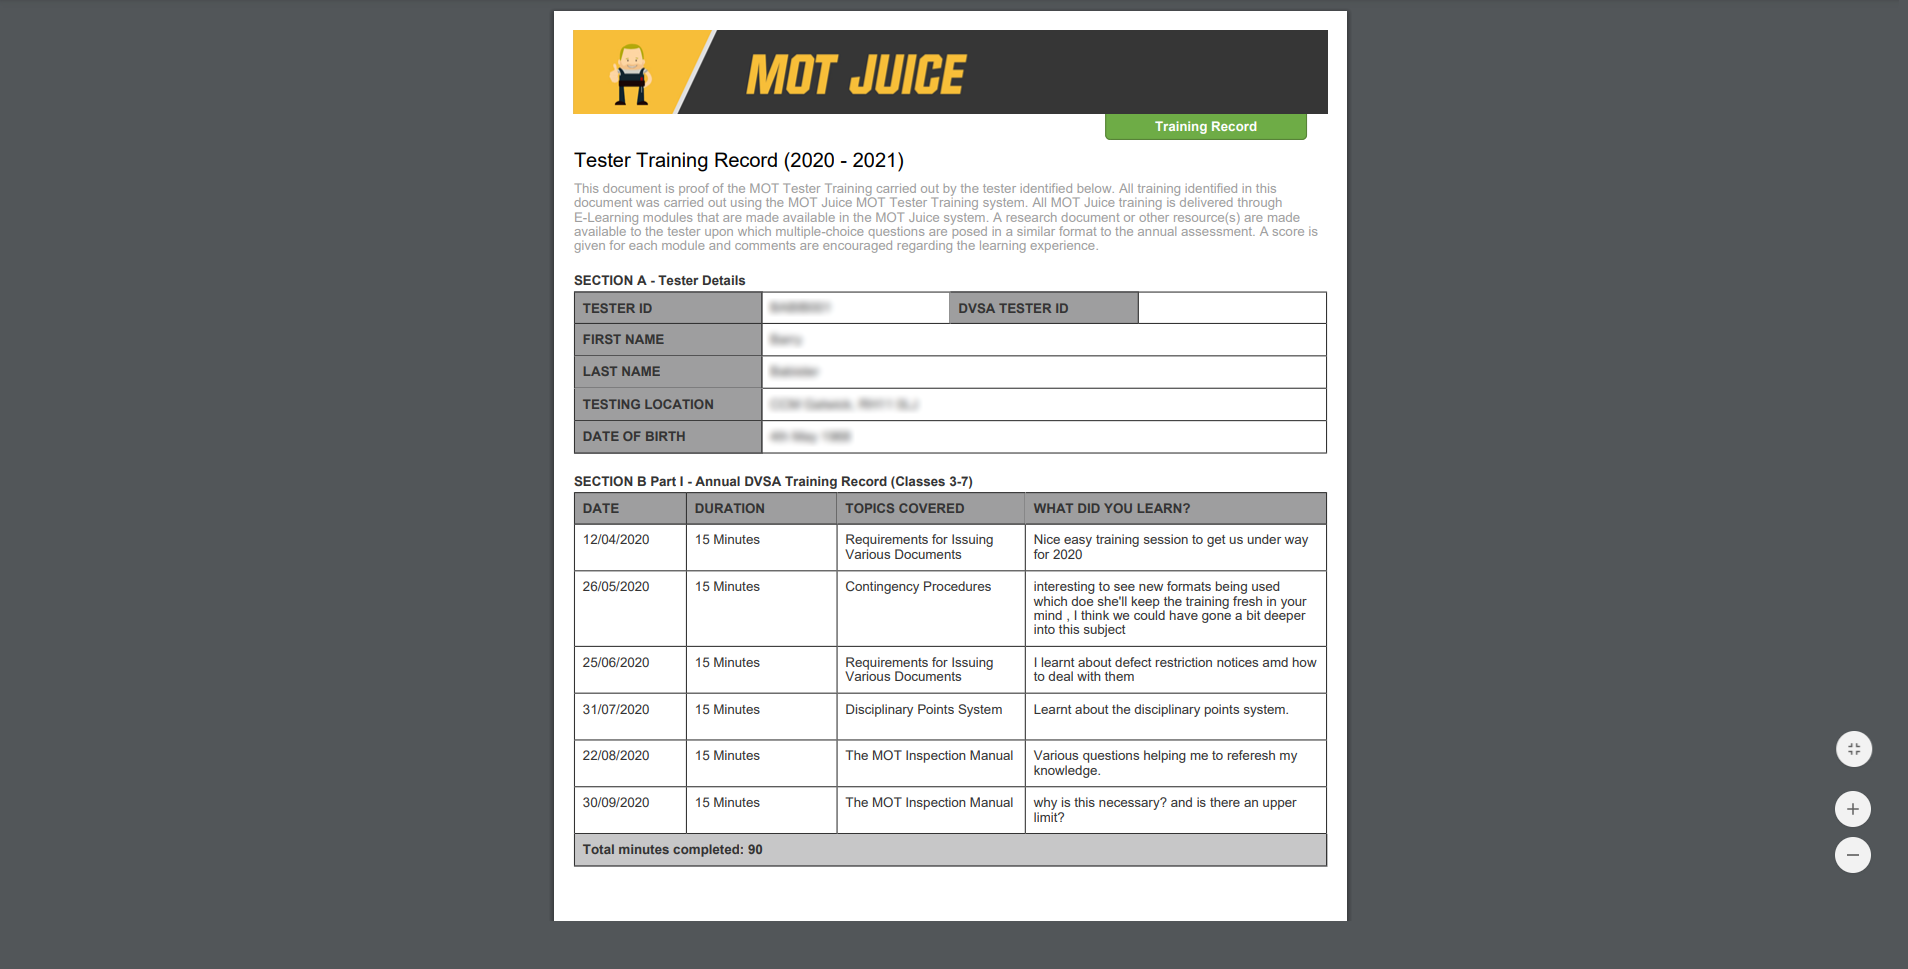 mot juice automatically compiles a downloadable training record easily printable for vehicle examiner records